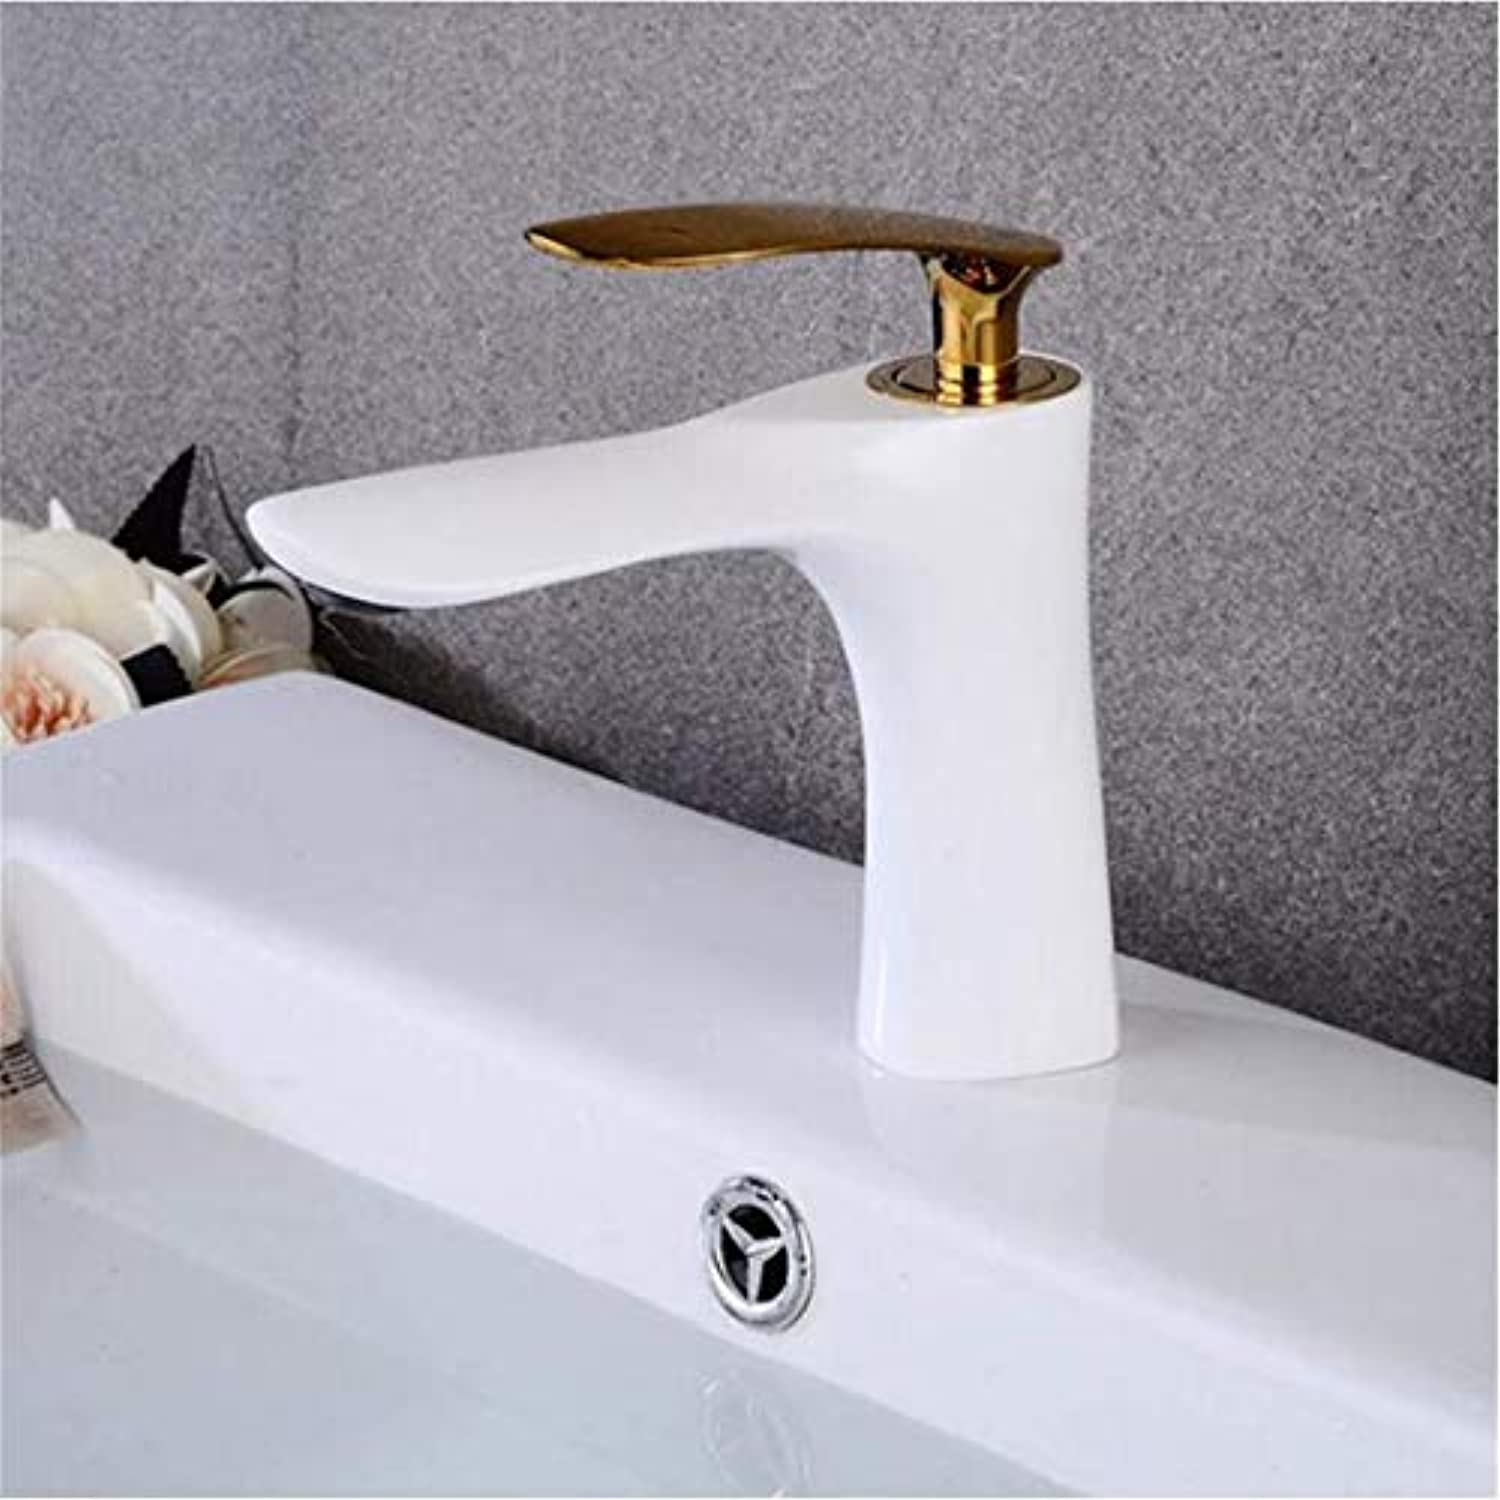 Stainless Steel Vintage Brass Bathroom Faucet Single Handle Basin Mixer Tap Hot And Cold Water Tap Basin Faucet